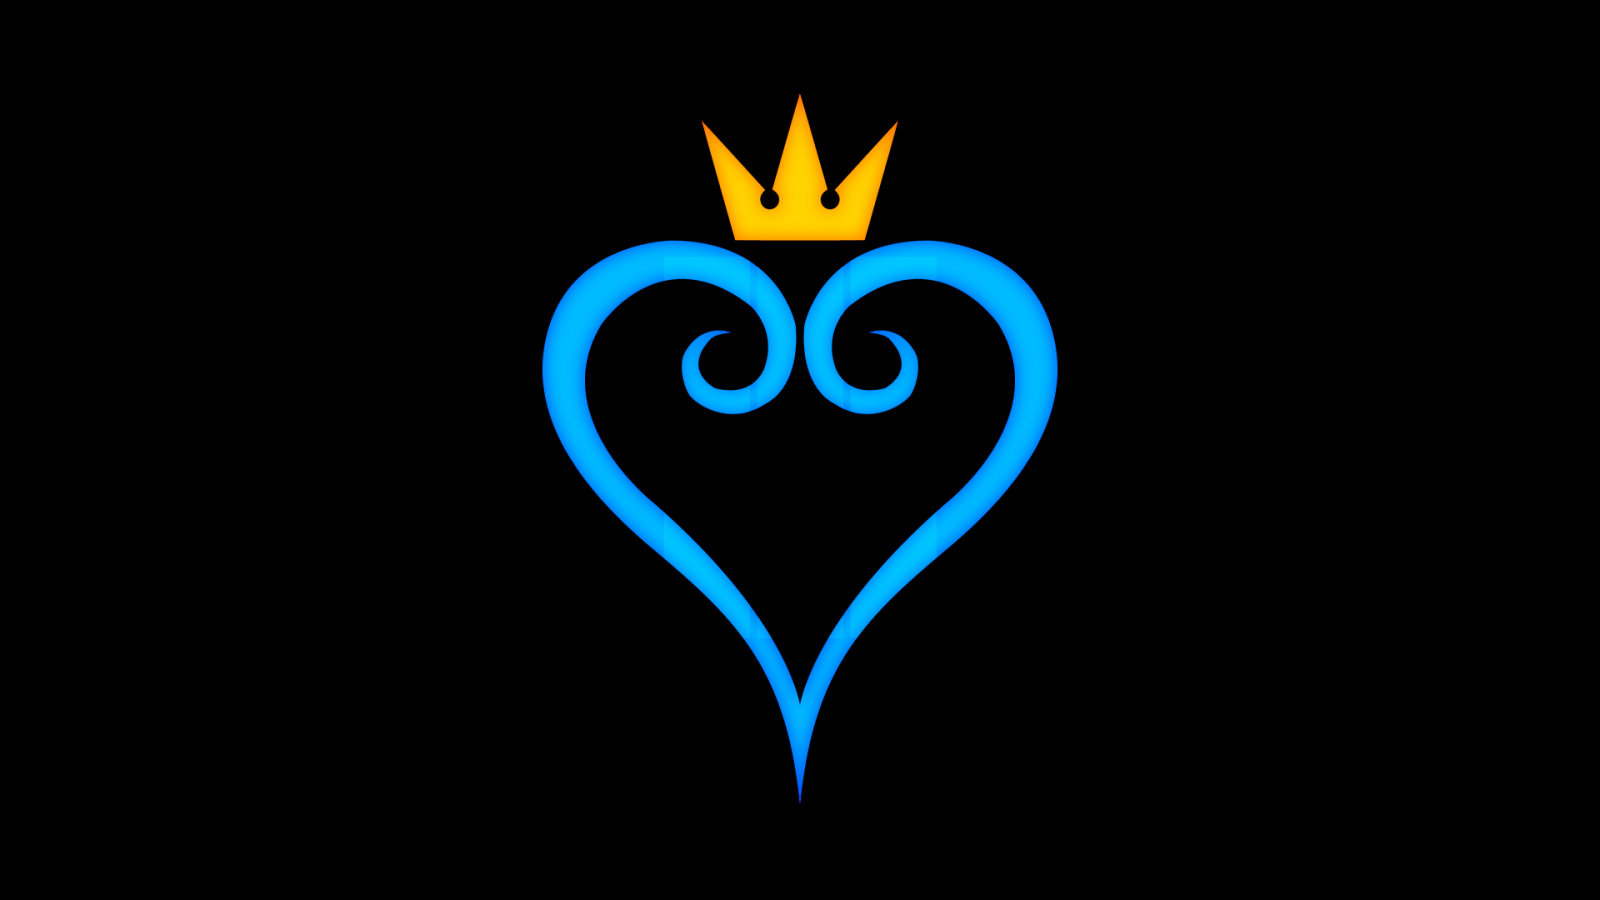 1600x900 Kingdom Hearts Heart Black Logo Crown Disney Hd